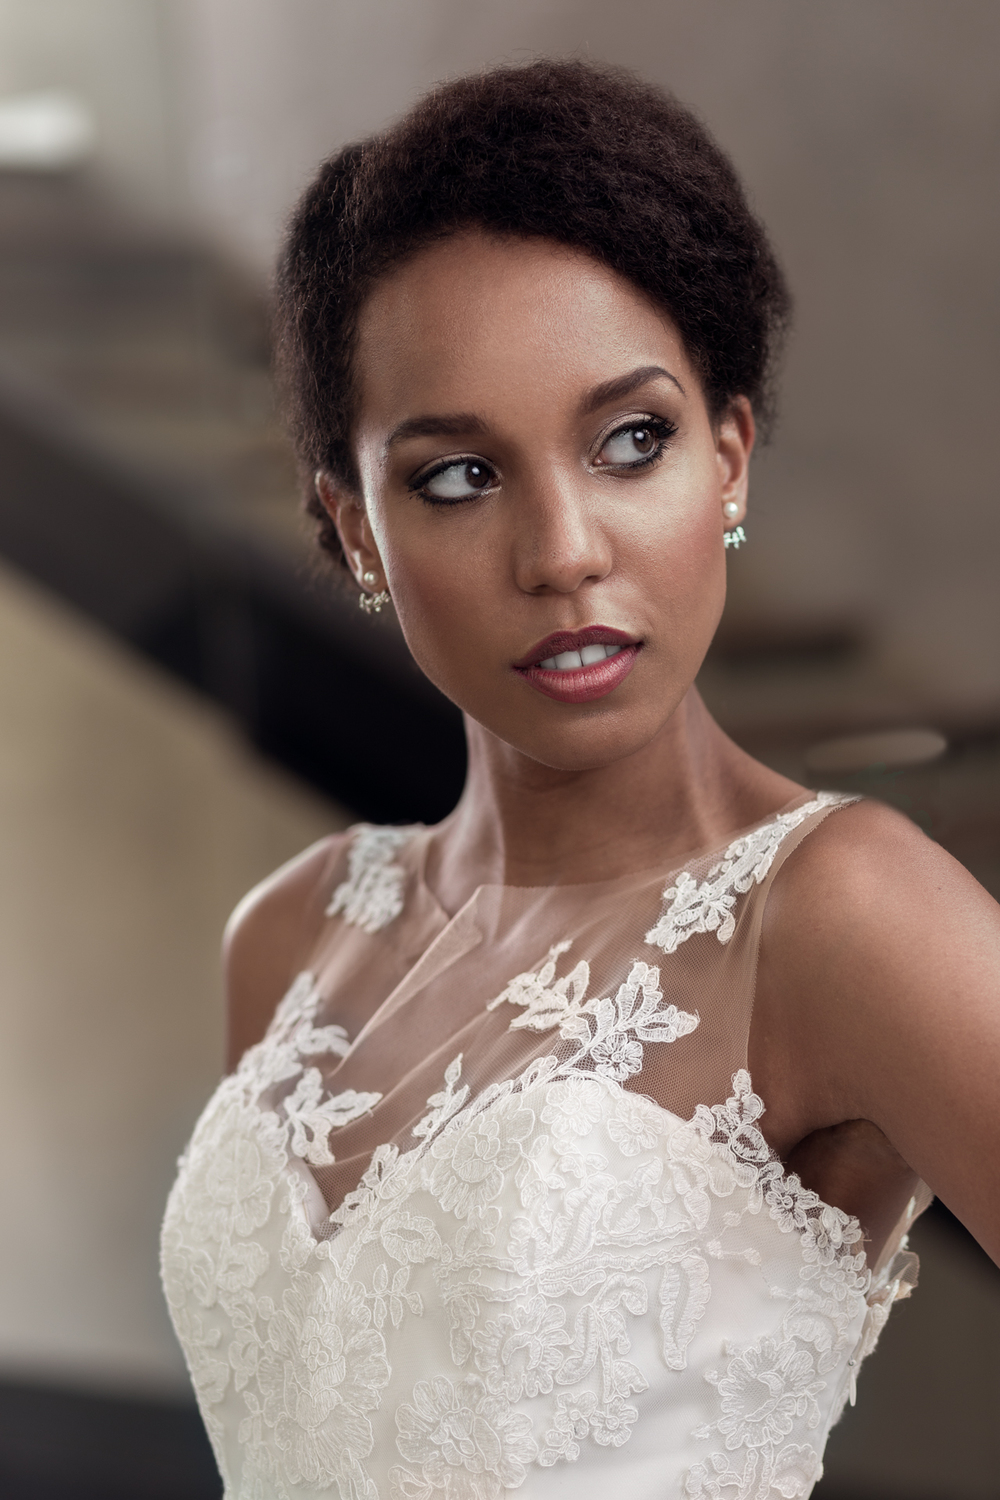 Vonve-Bridal-Wedding-Dress-Shoot